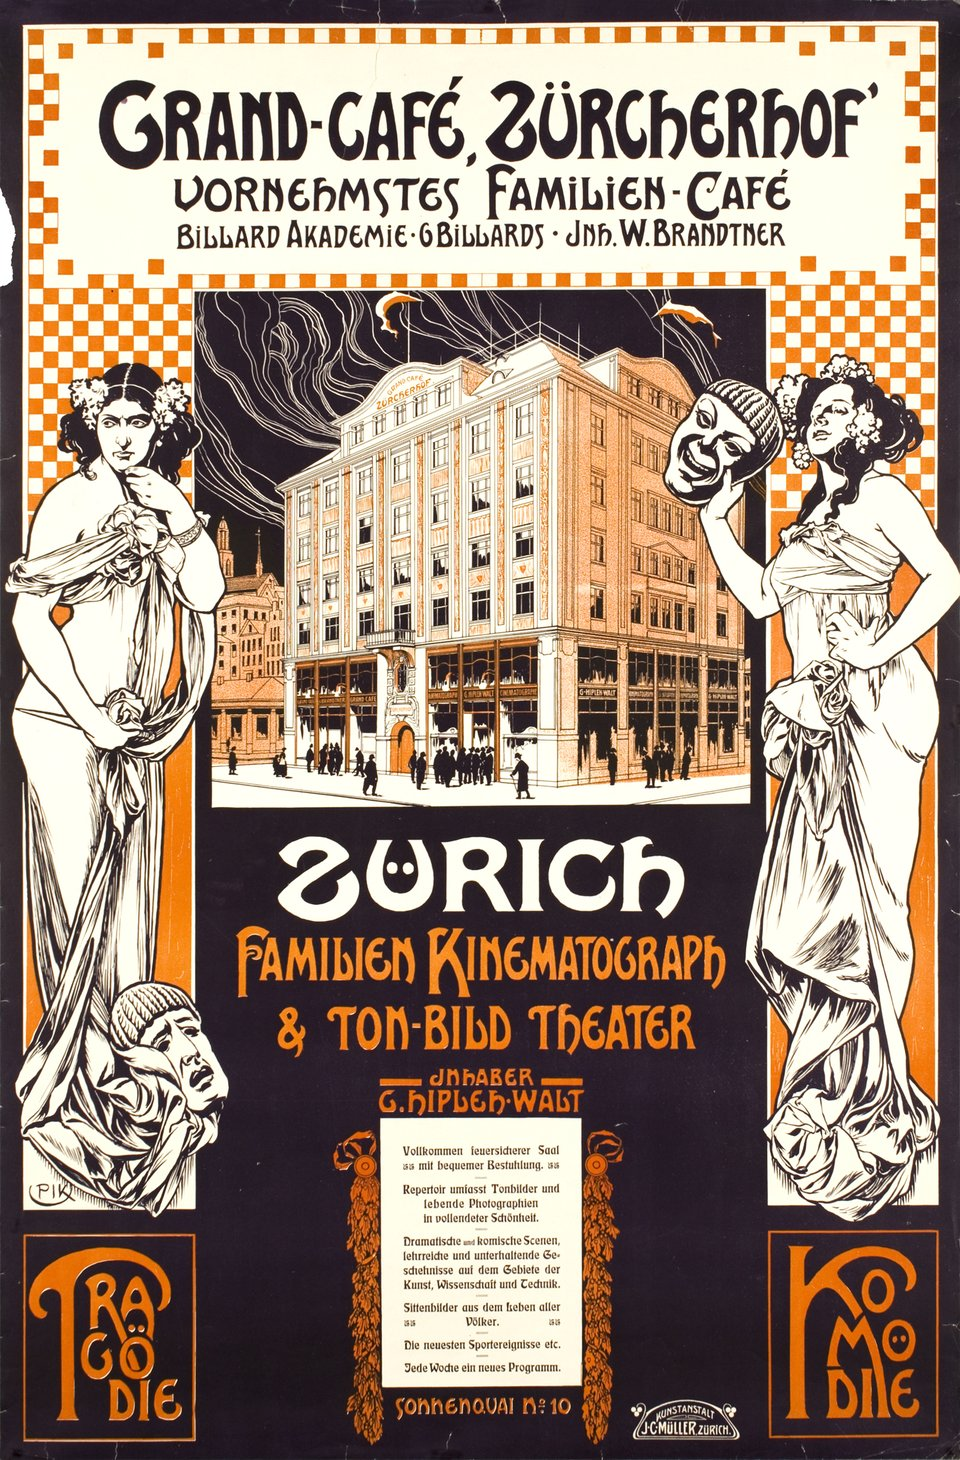 Zürich, Grand café Zürcherhof  – Affiche ancienne –  PIK, Paul KRAWUTSCHKE – 1908